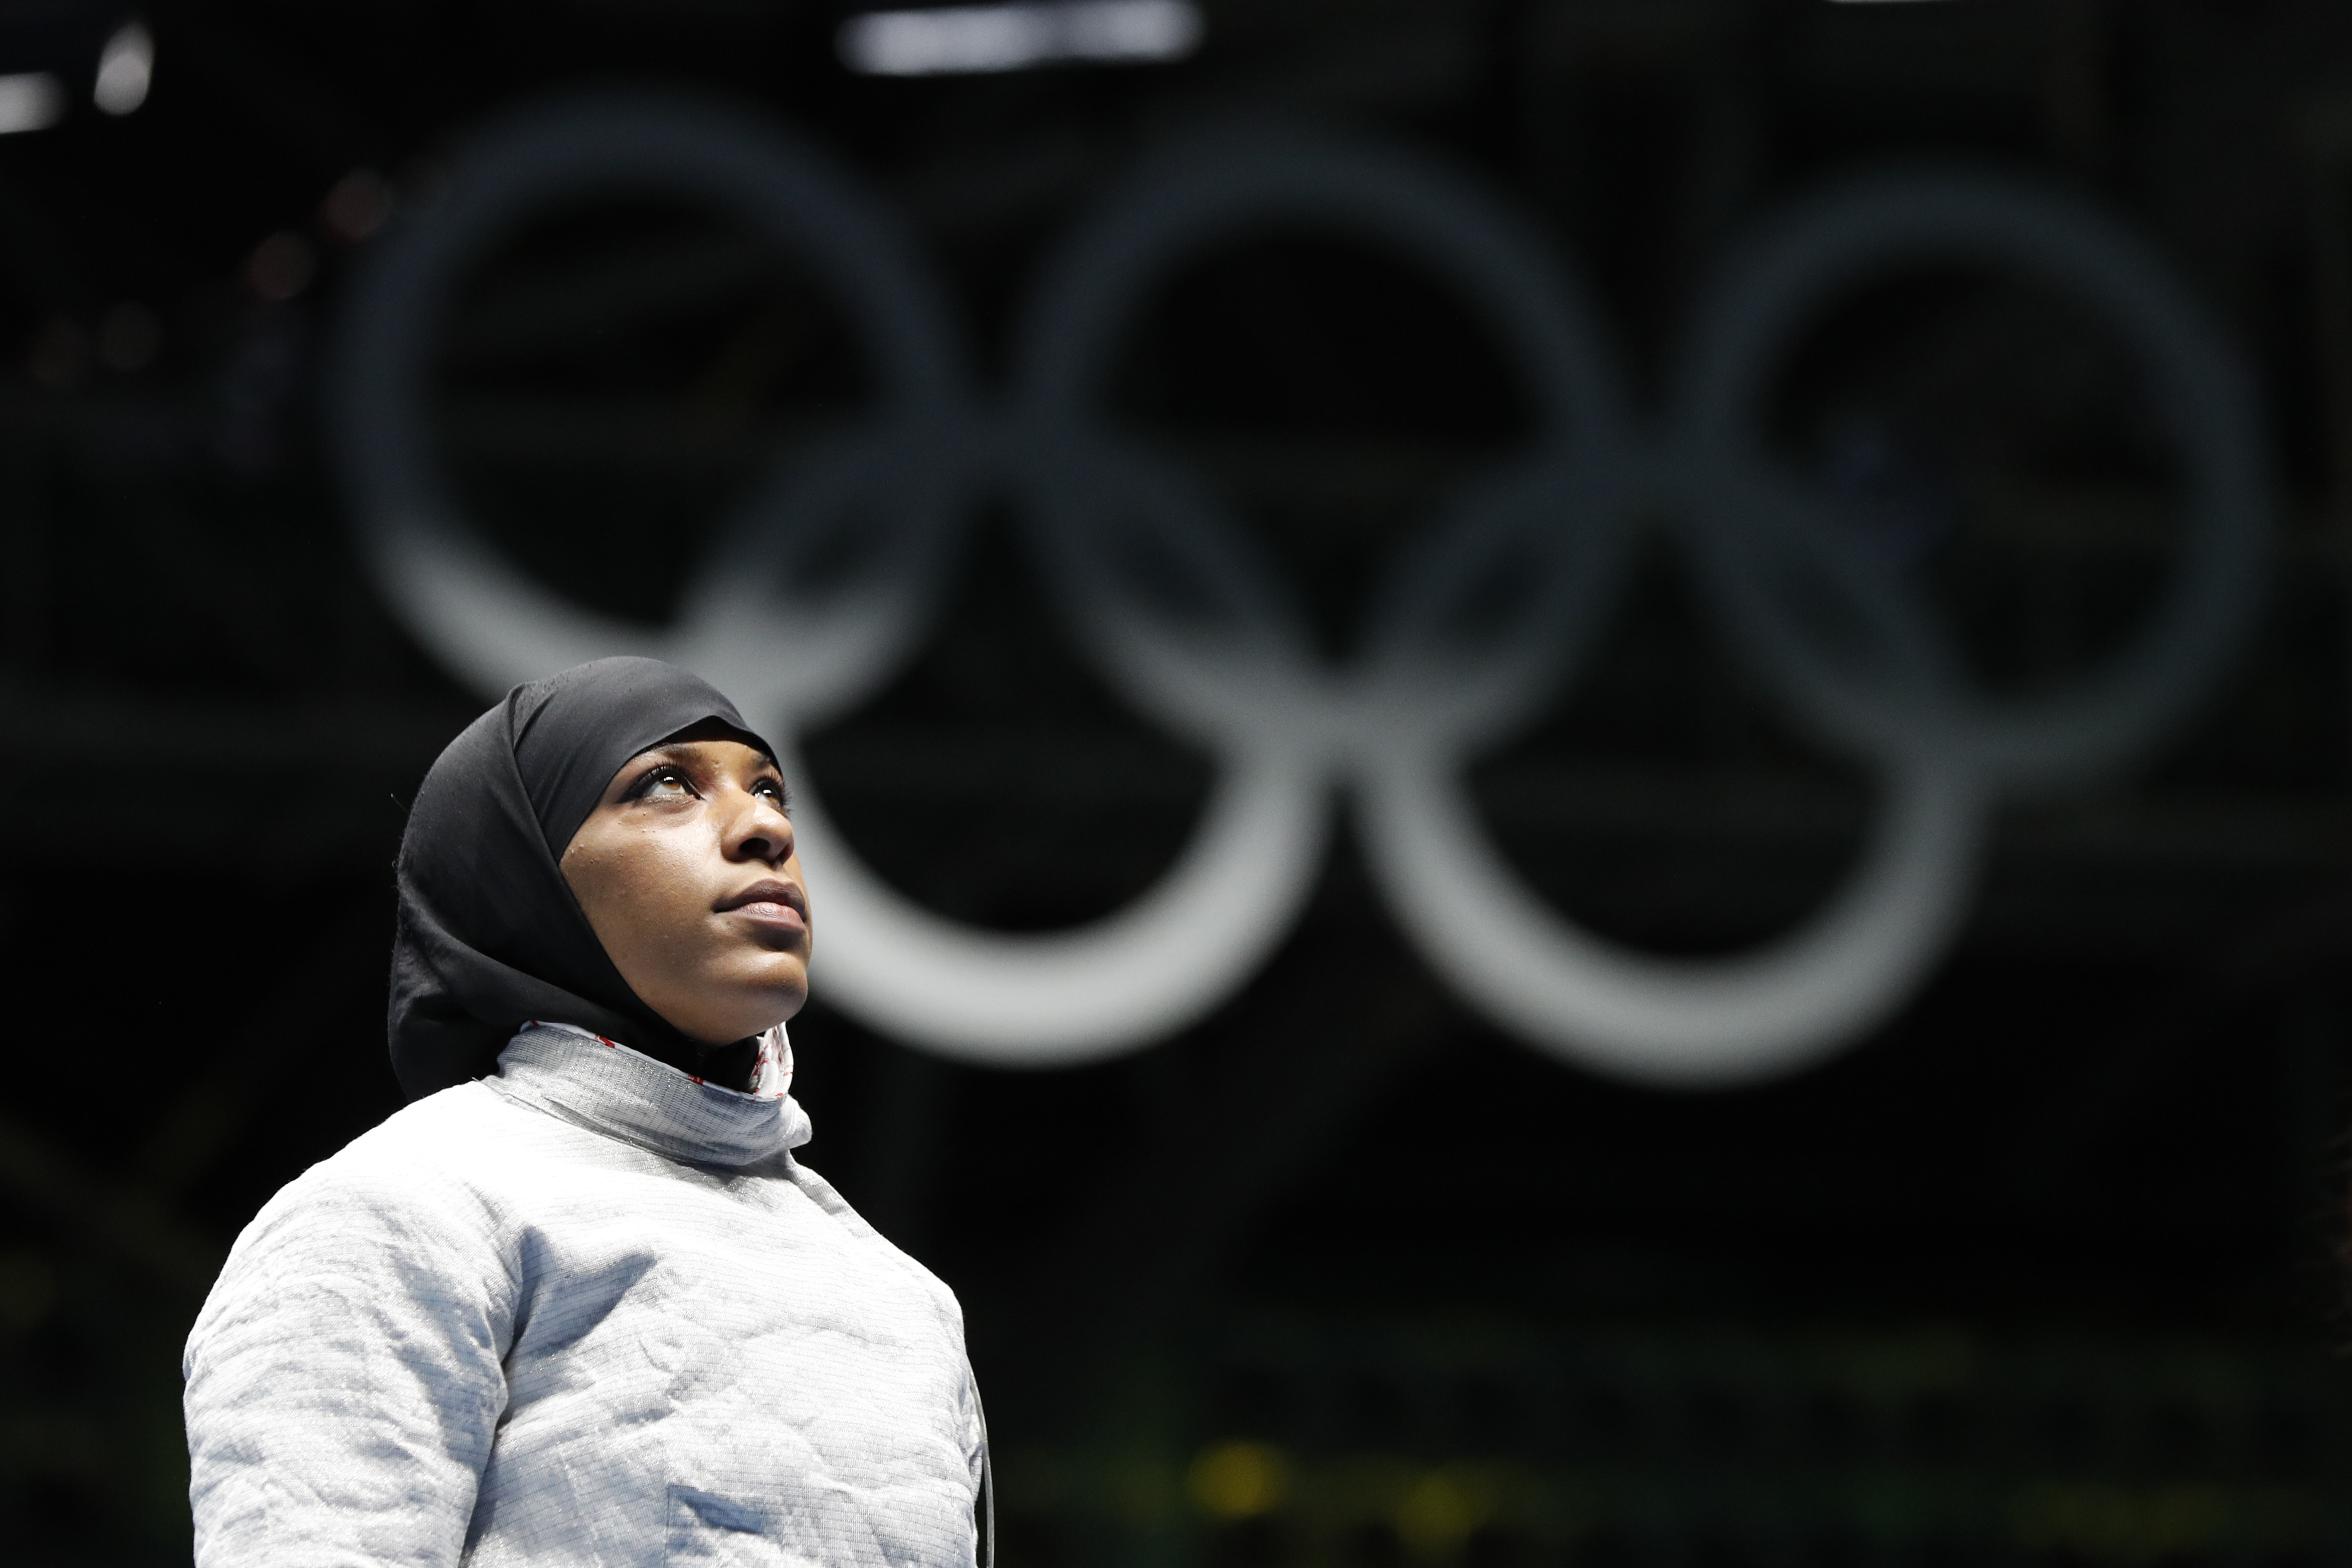 FILE- In this Aug. 8, 2016, file photo, Ibtihaj Muhammad, from United States, waits for match against Olena Kravatska from Ukraine, in the women's saber individual fencing event at the Summer Olympics in Rio de Janeiro. International basketball competitio